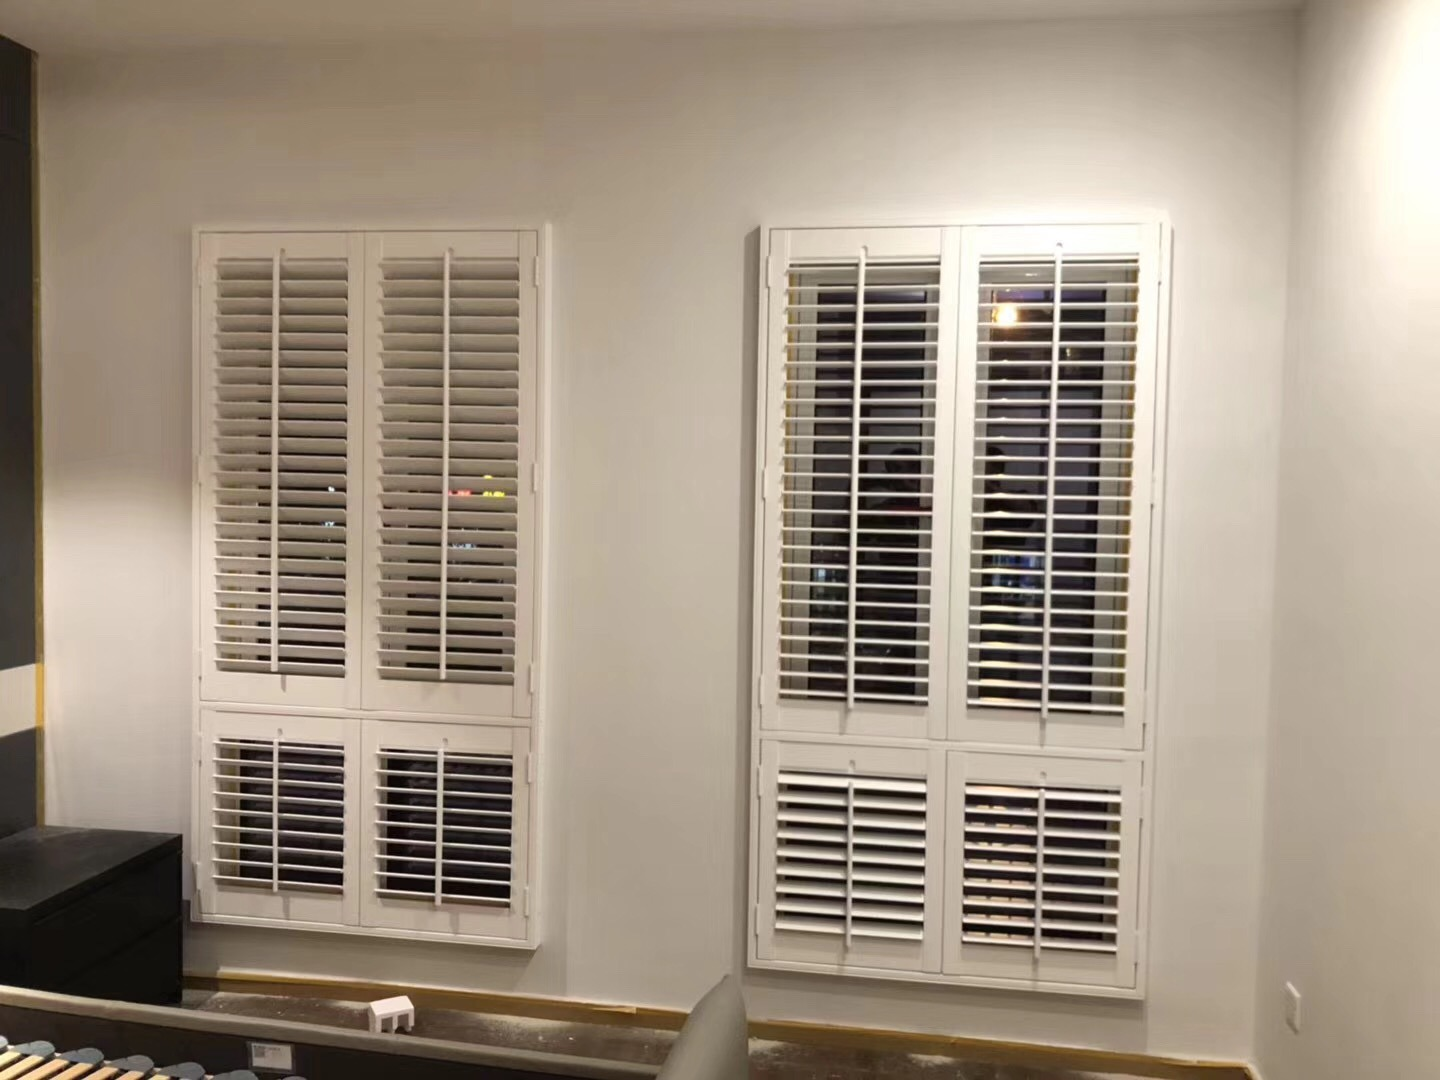 Hot Item Jalousie Windows In The Philippines From China Plantation Shutters